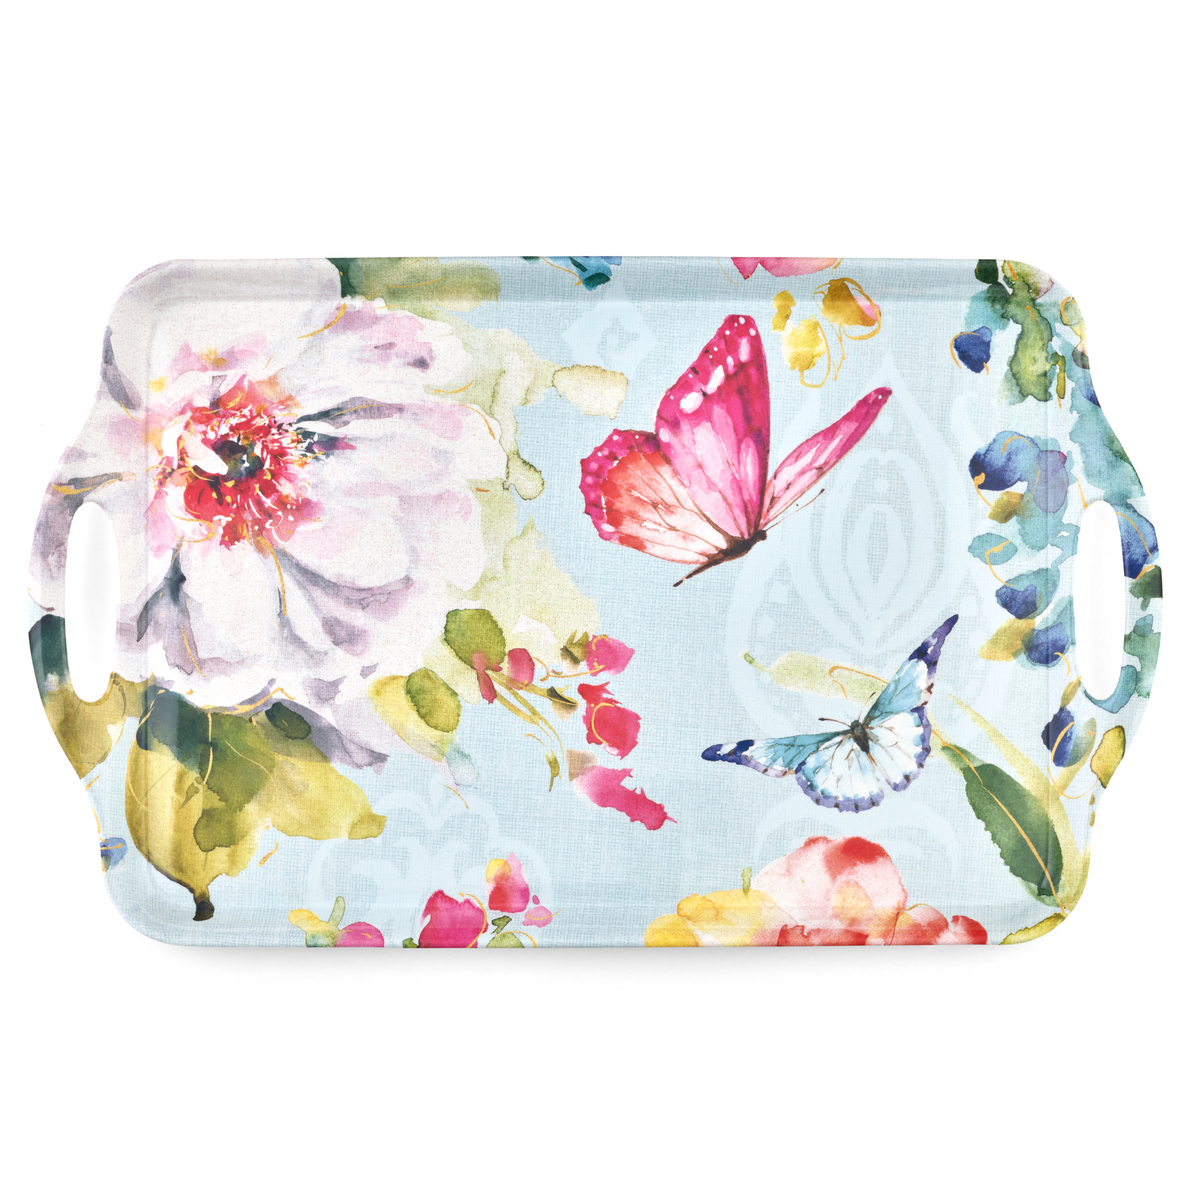 Pimpernel Colorful Breeze Large Melamine Handled Tray image number 0